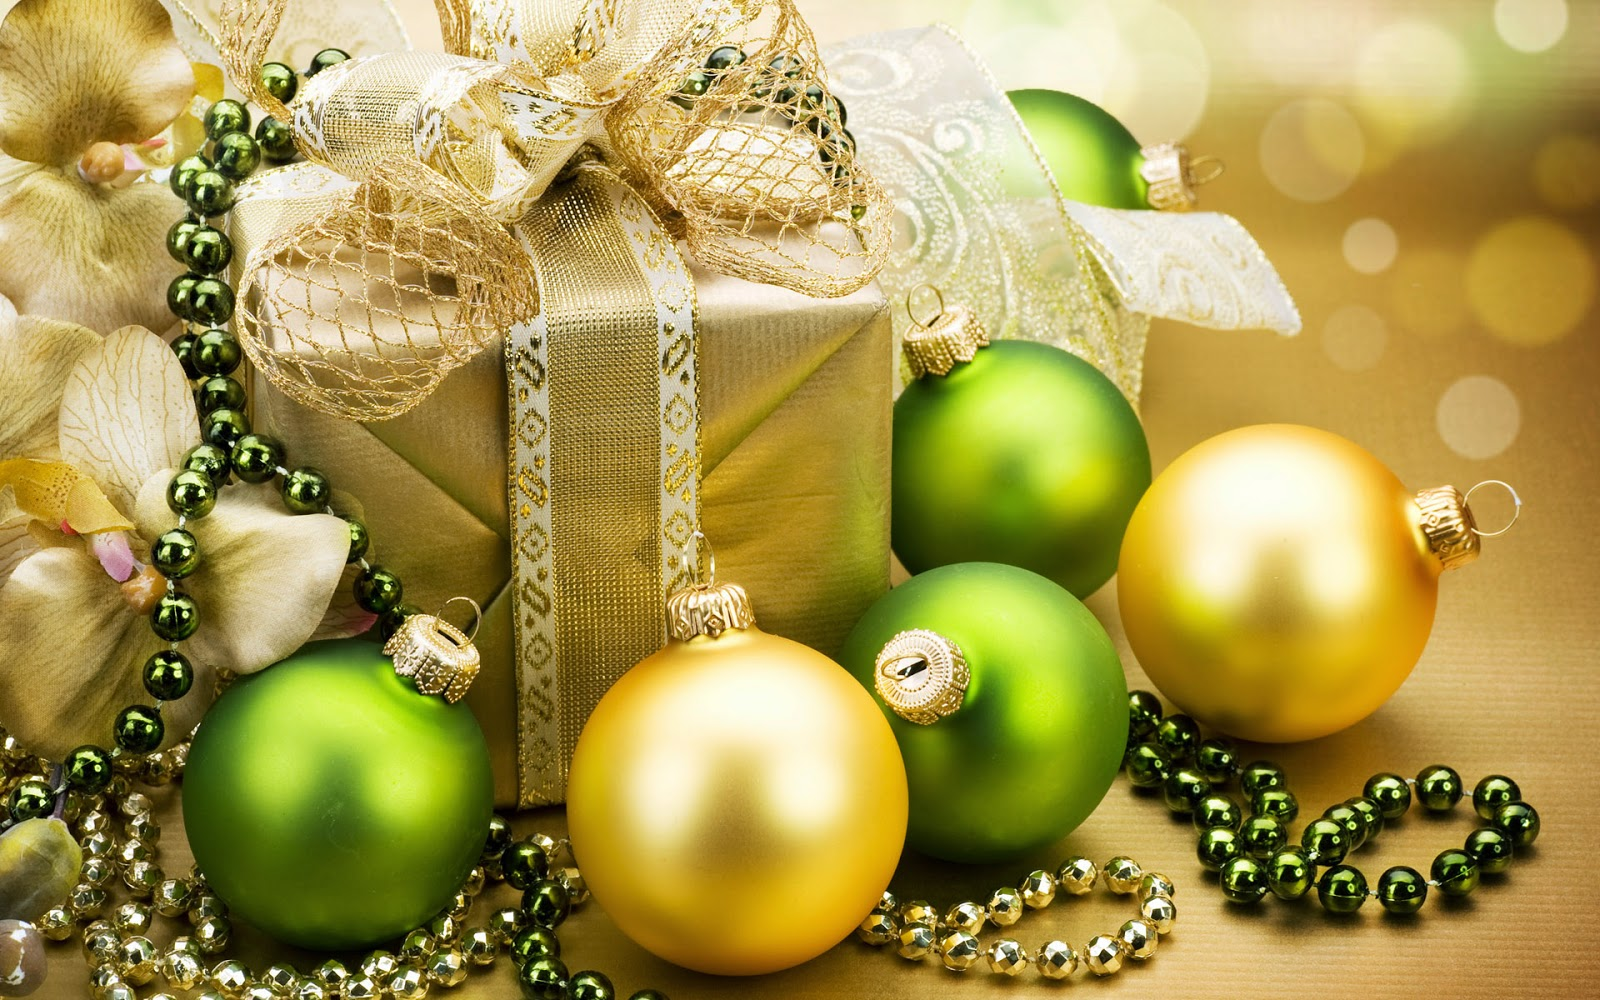 Golden-Christmas-balls-with-green-baubles-gift-box-pack-background-HD-wallpaper.jpg